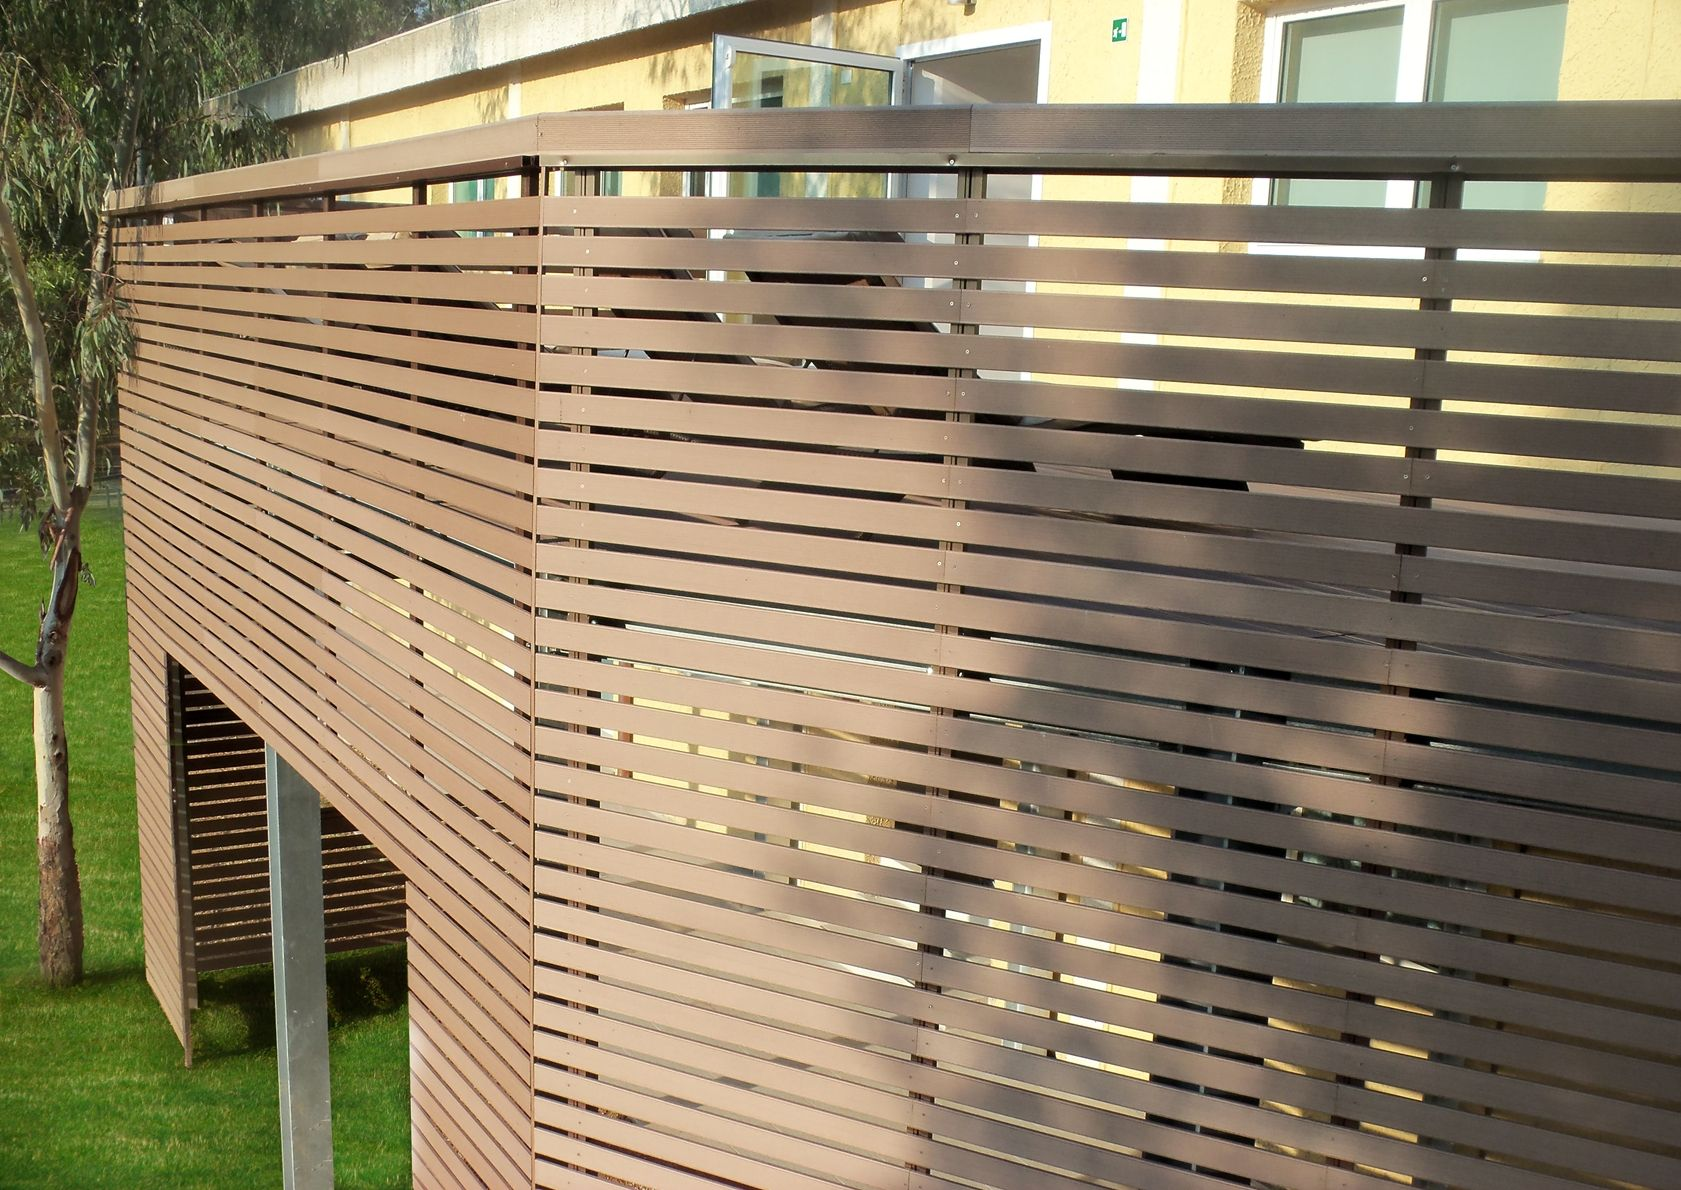 brise soleil railings and decking plasticwood for the new. Black Bedroom Furniture Sets. Home Design Ideas